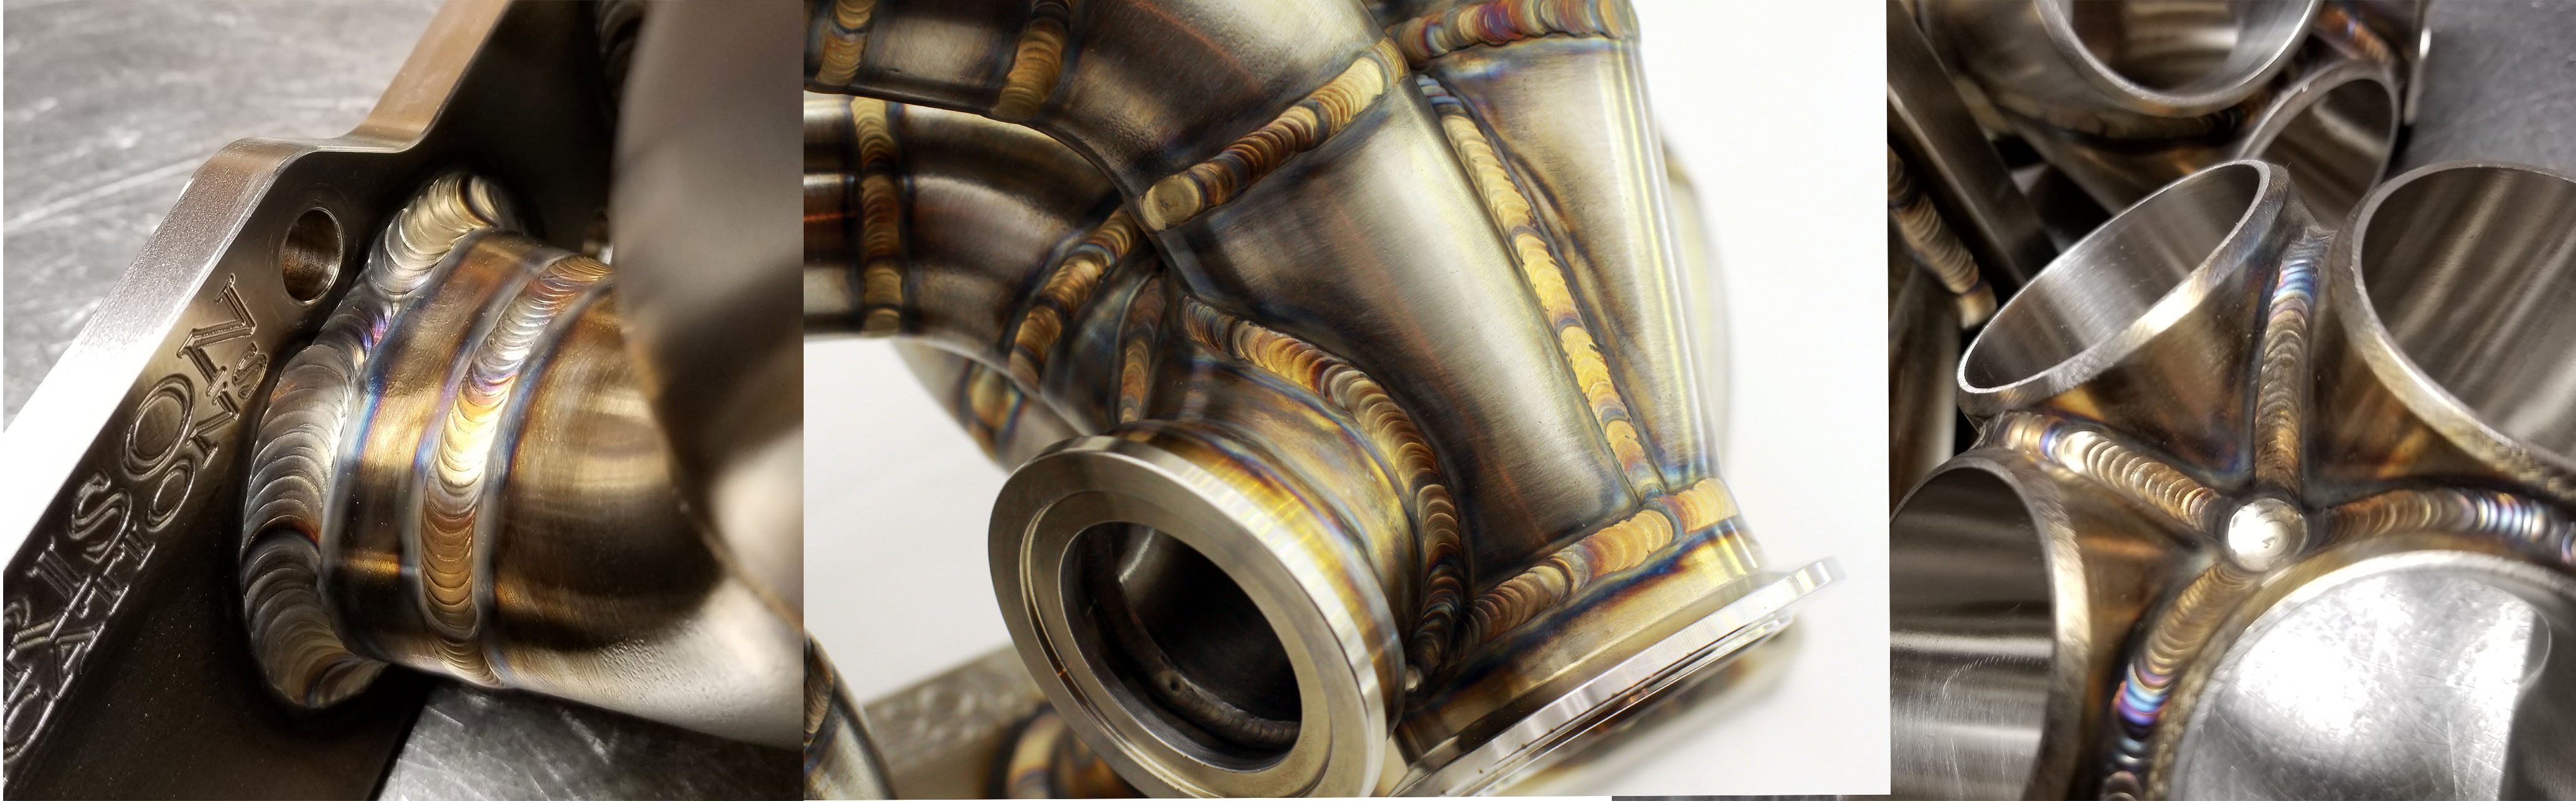 321 stainless is now the standard material for all of our turbo manifolds!